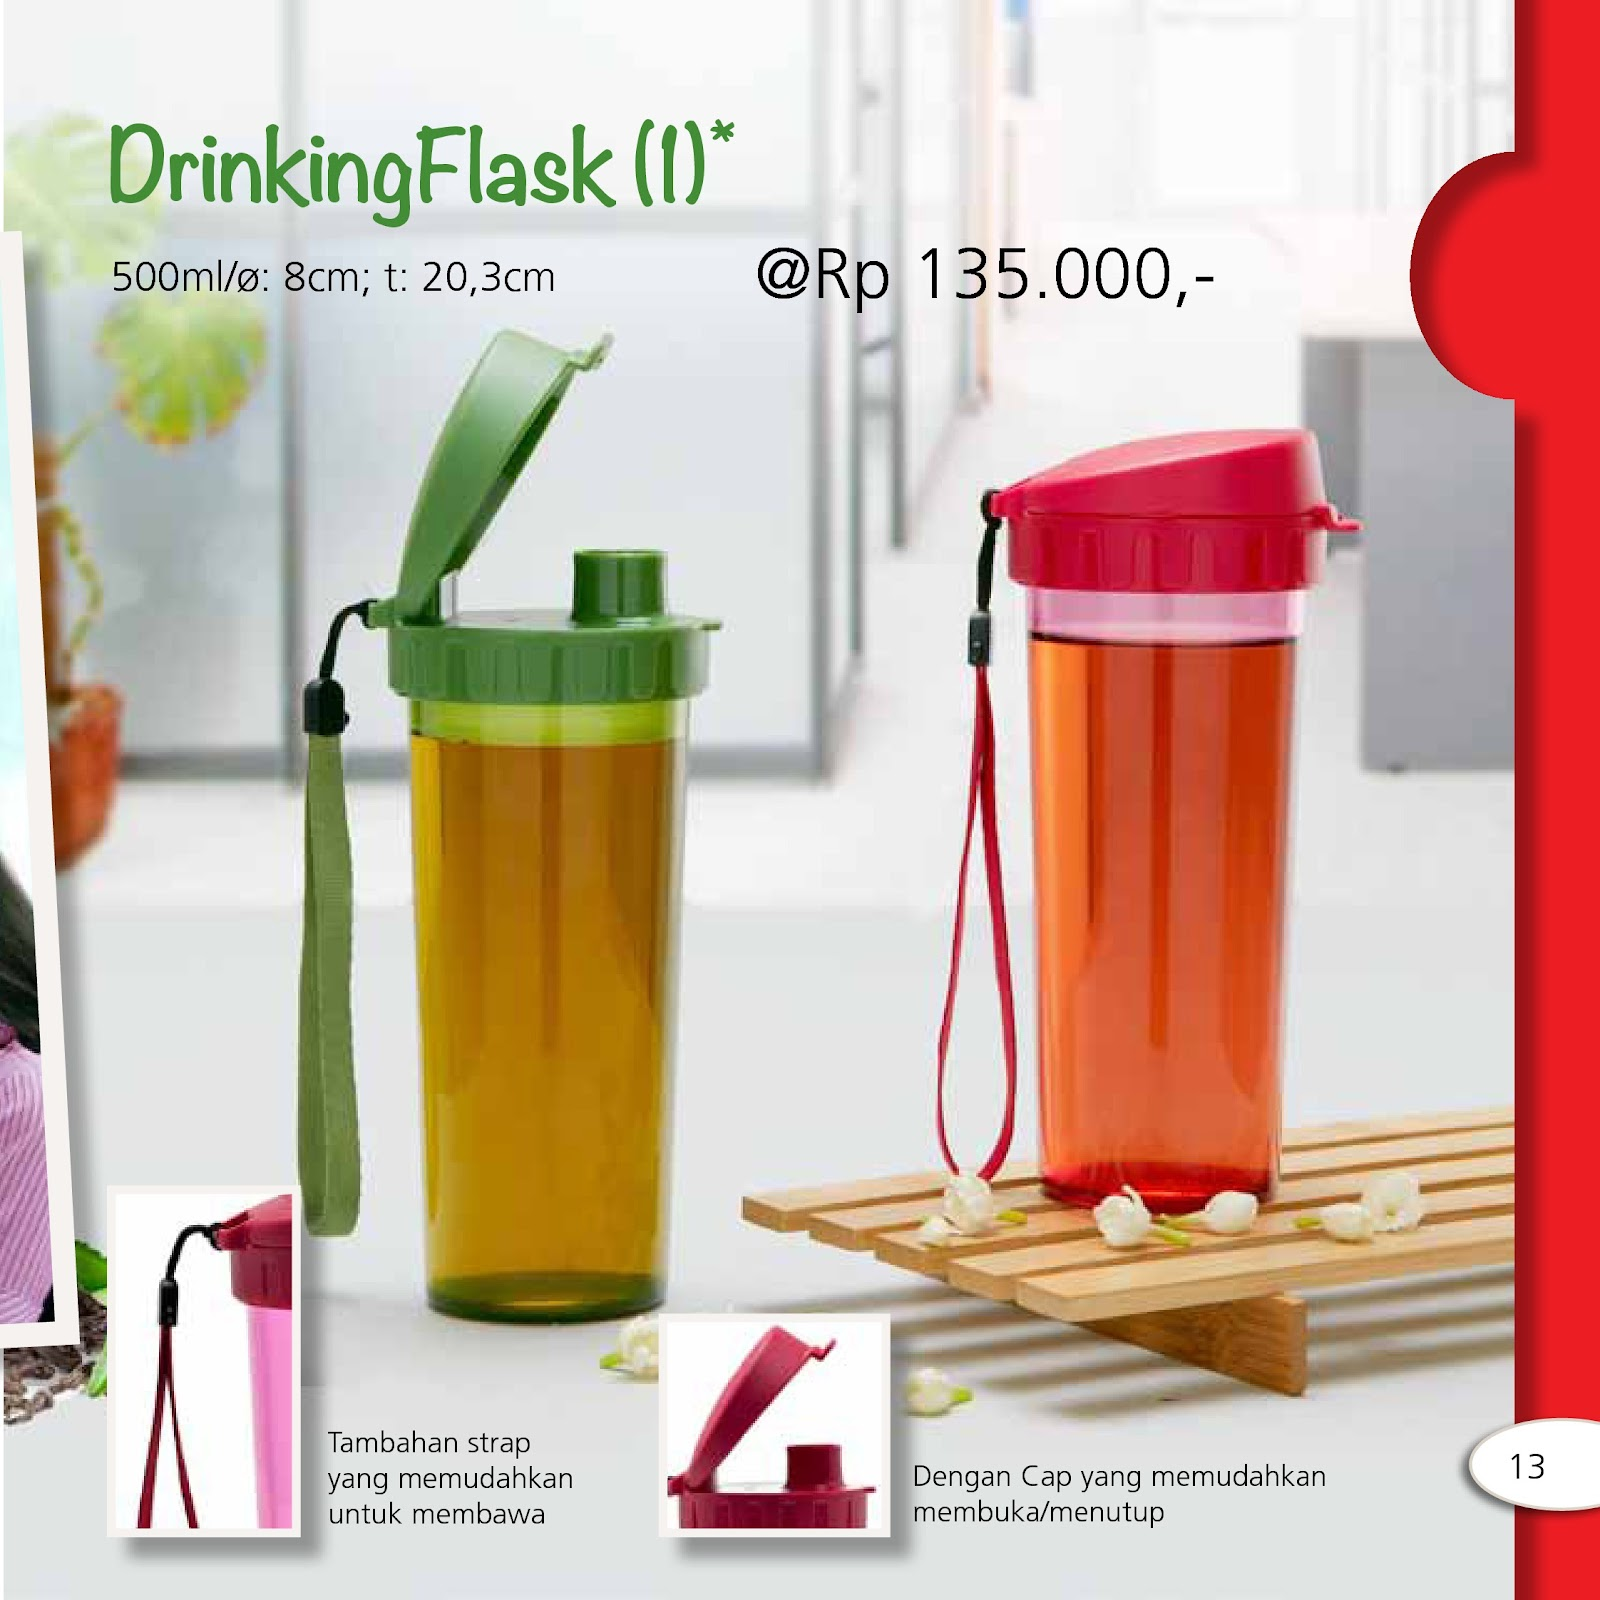 Katalog Tupperware Promo April 2013 (Jawa & Bali) >>> Download